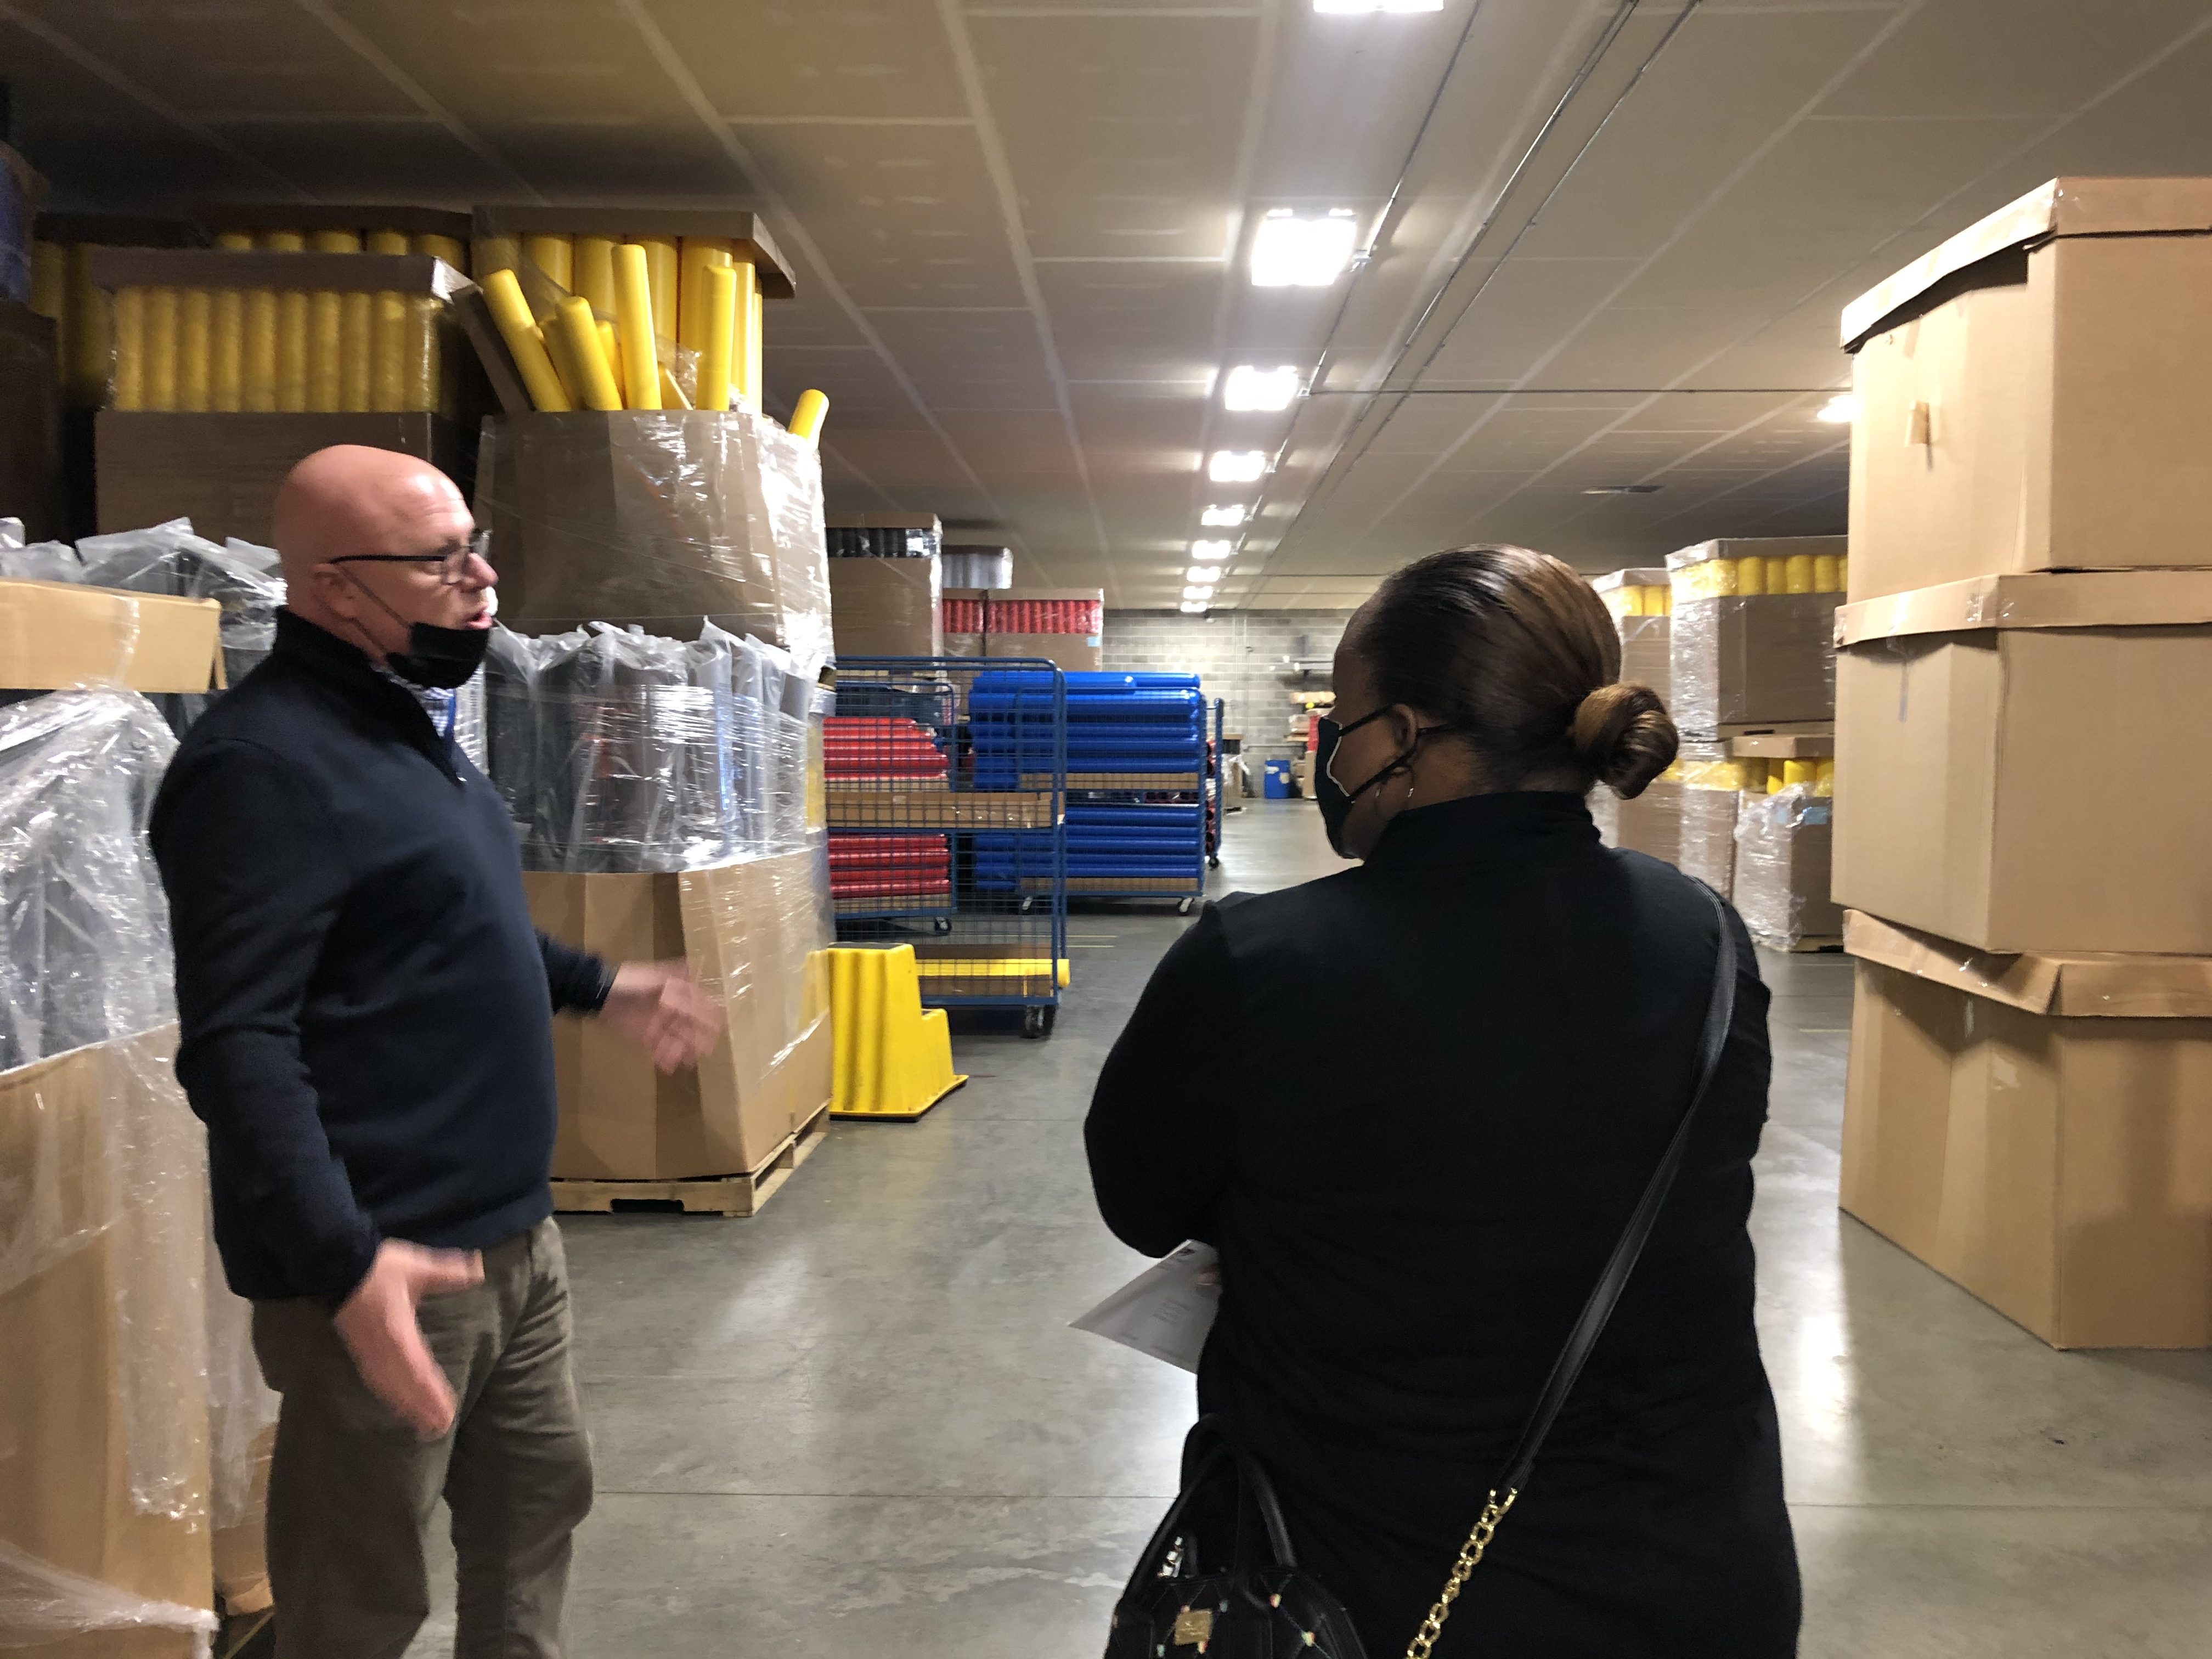 Gary Bowling shows off the warehouse as the team prepares orders.